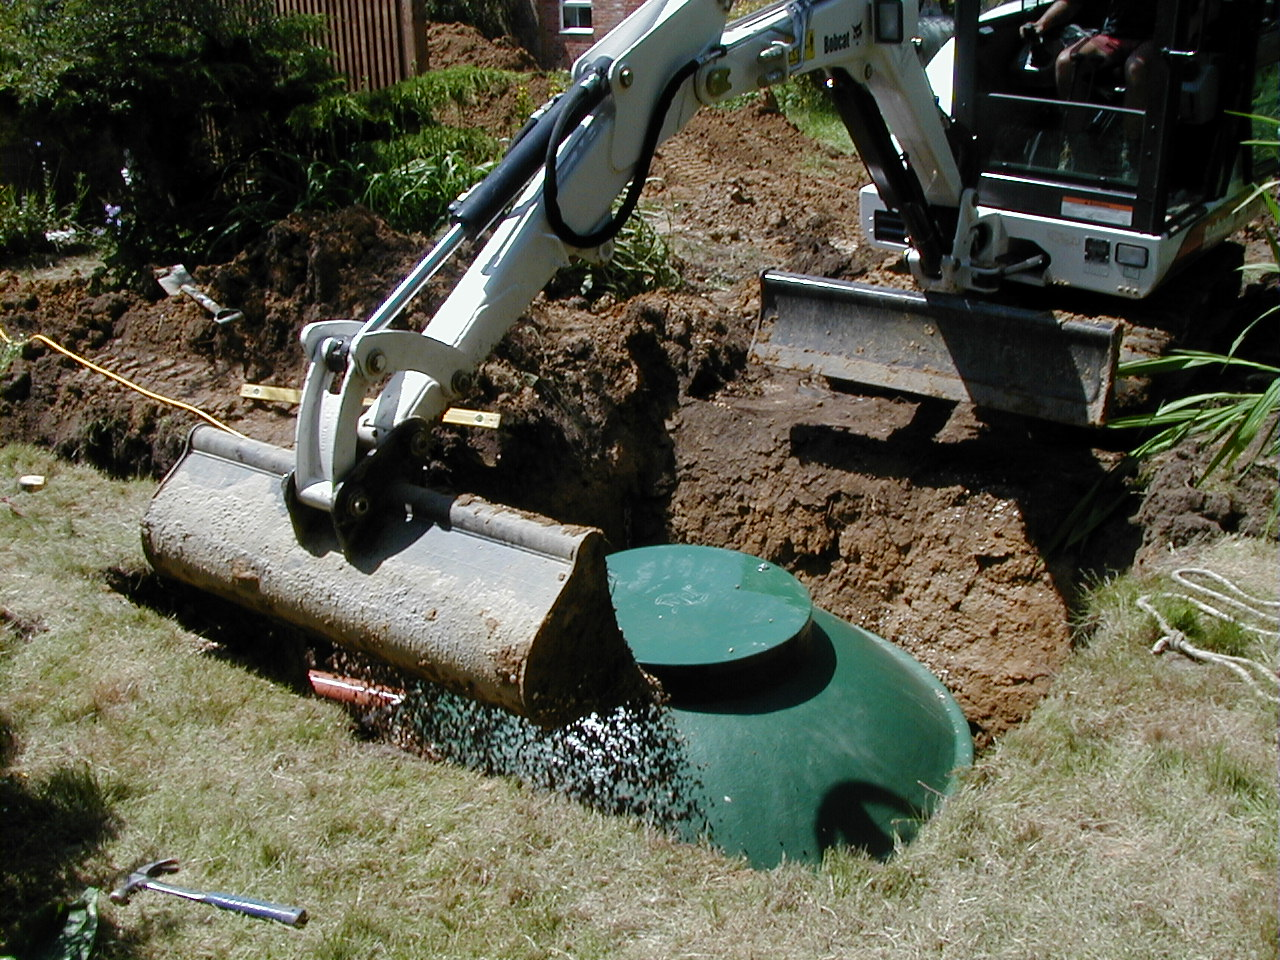 A digger covering dirt over a diamond sewage treatment plant during installation